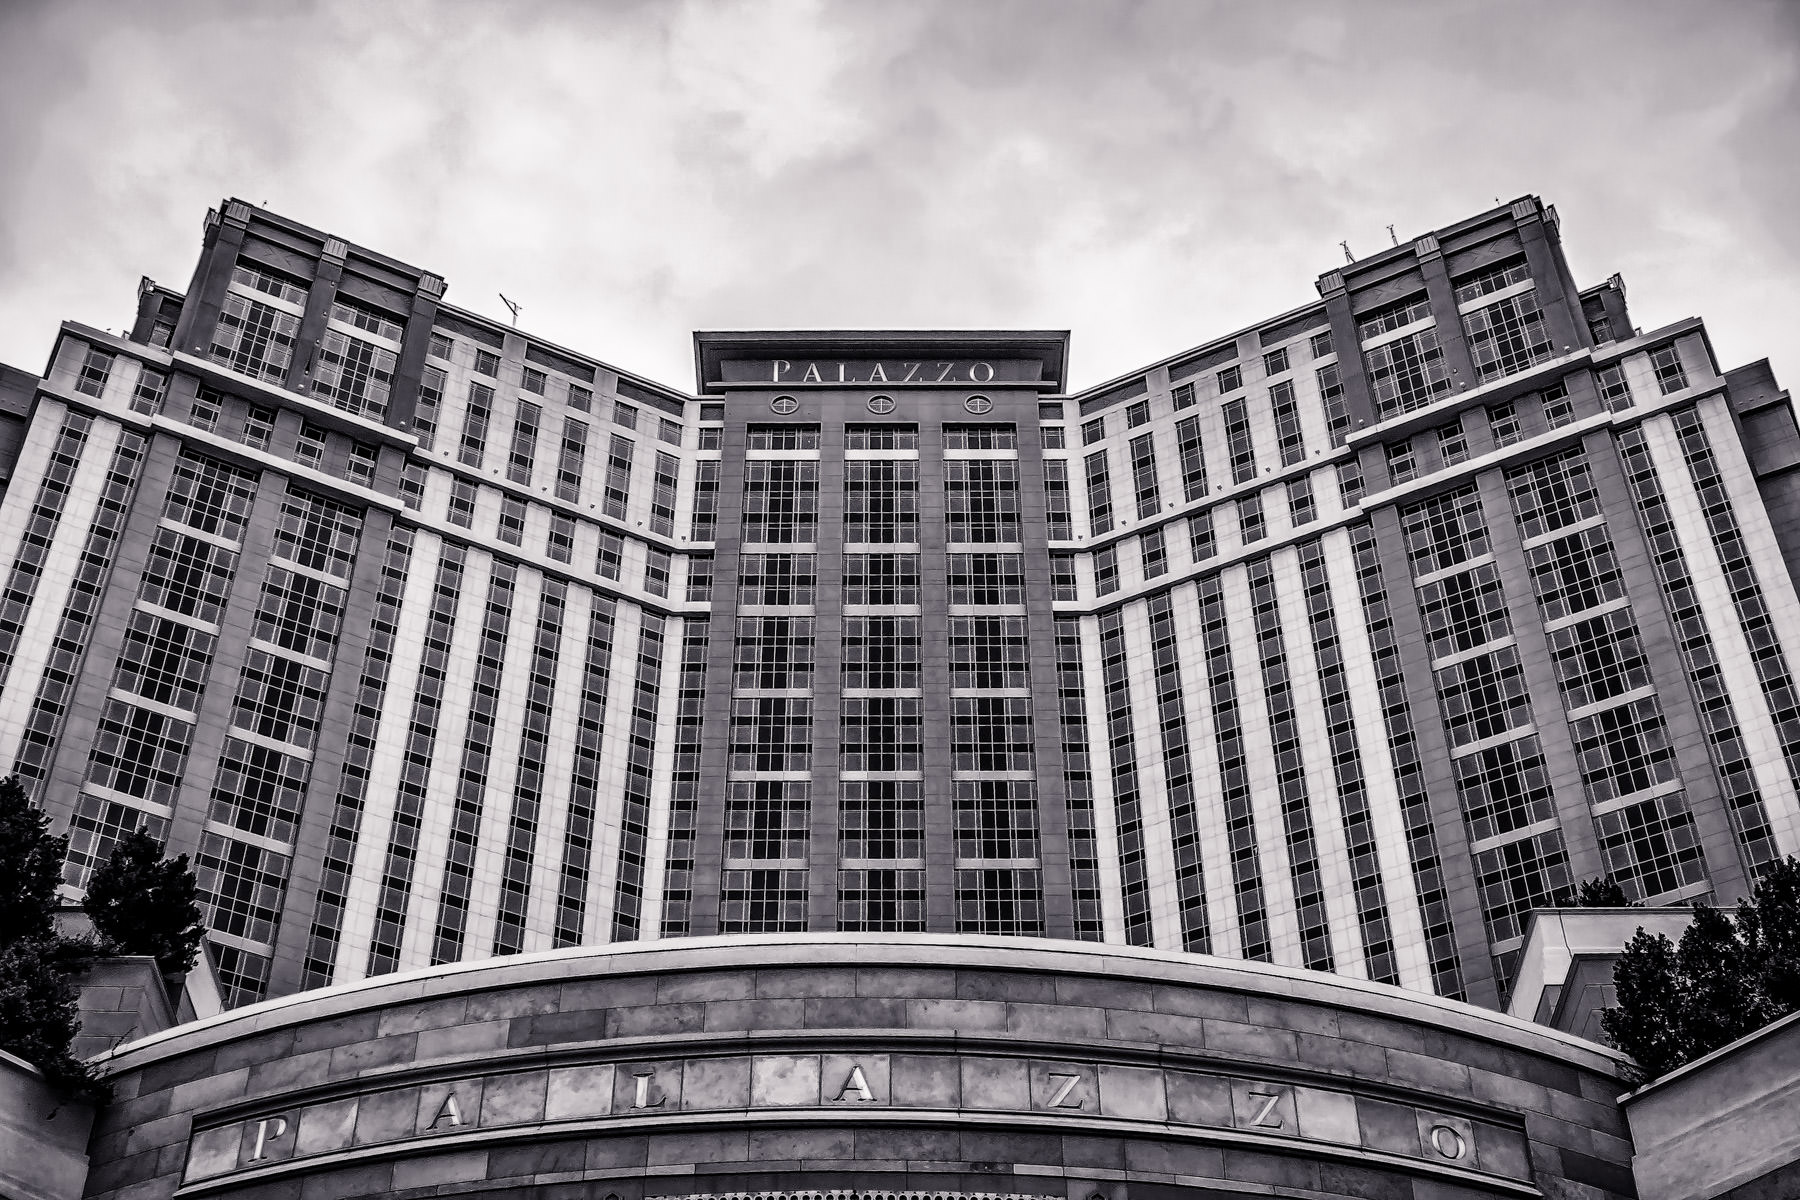 The Palazzo, sister property to The Venetian, rises into the sky over the Las Vegas Valley.